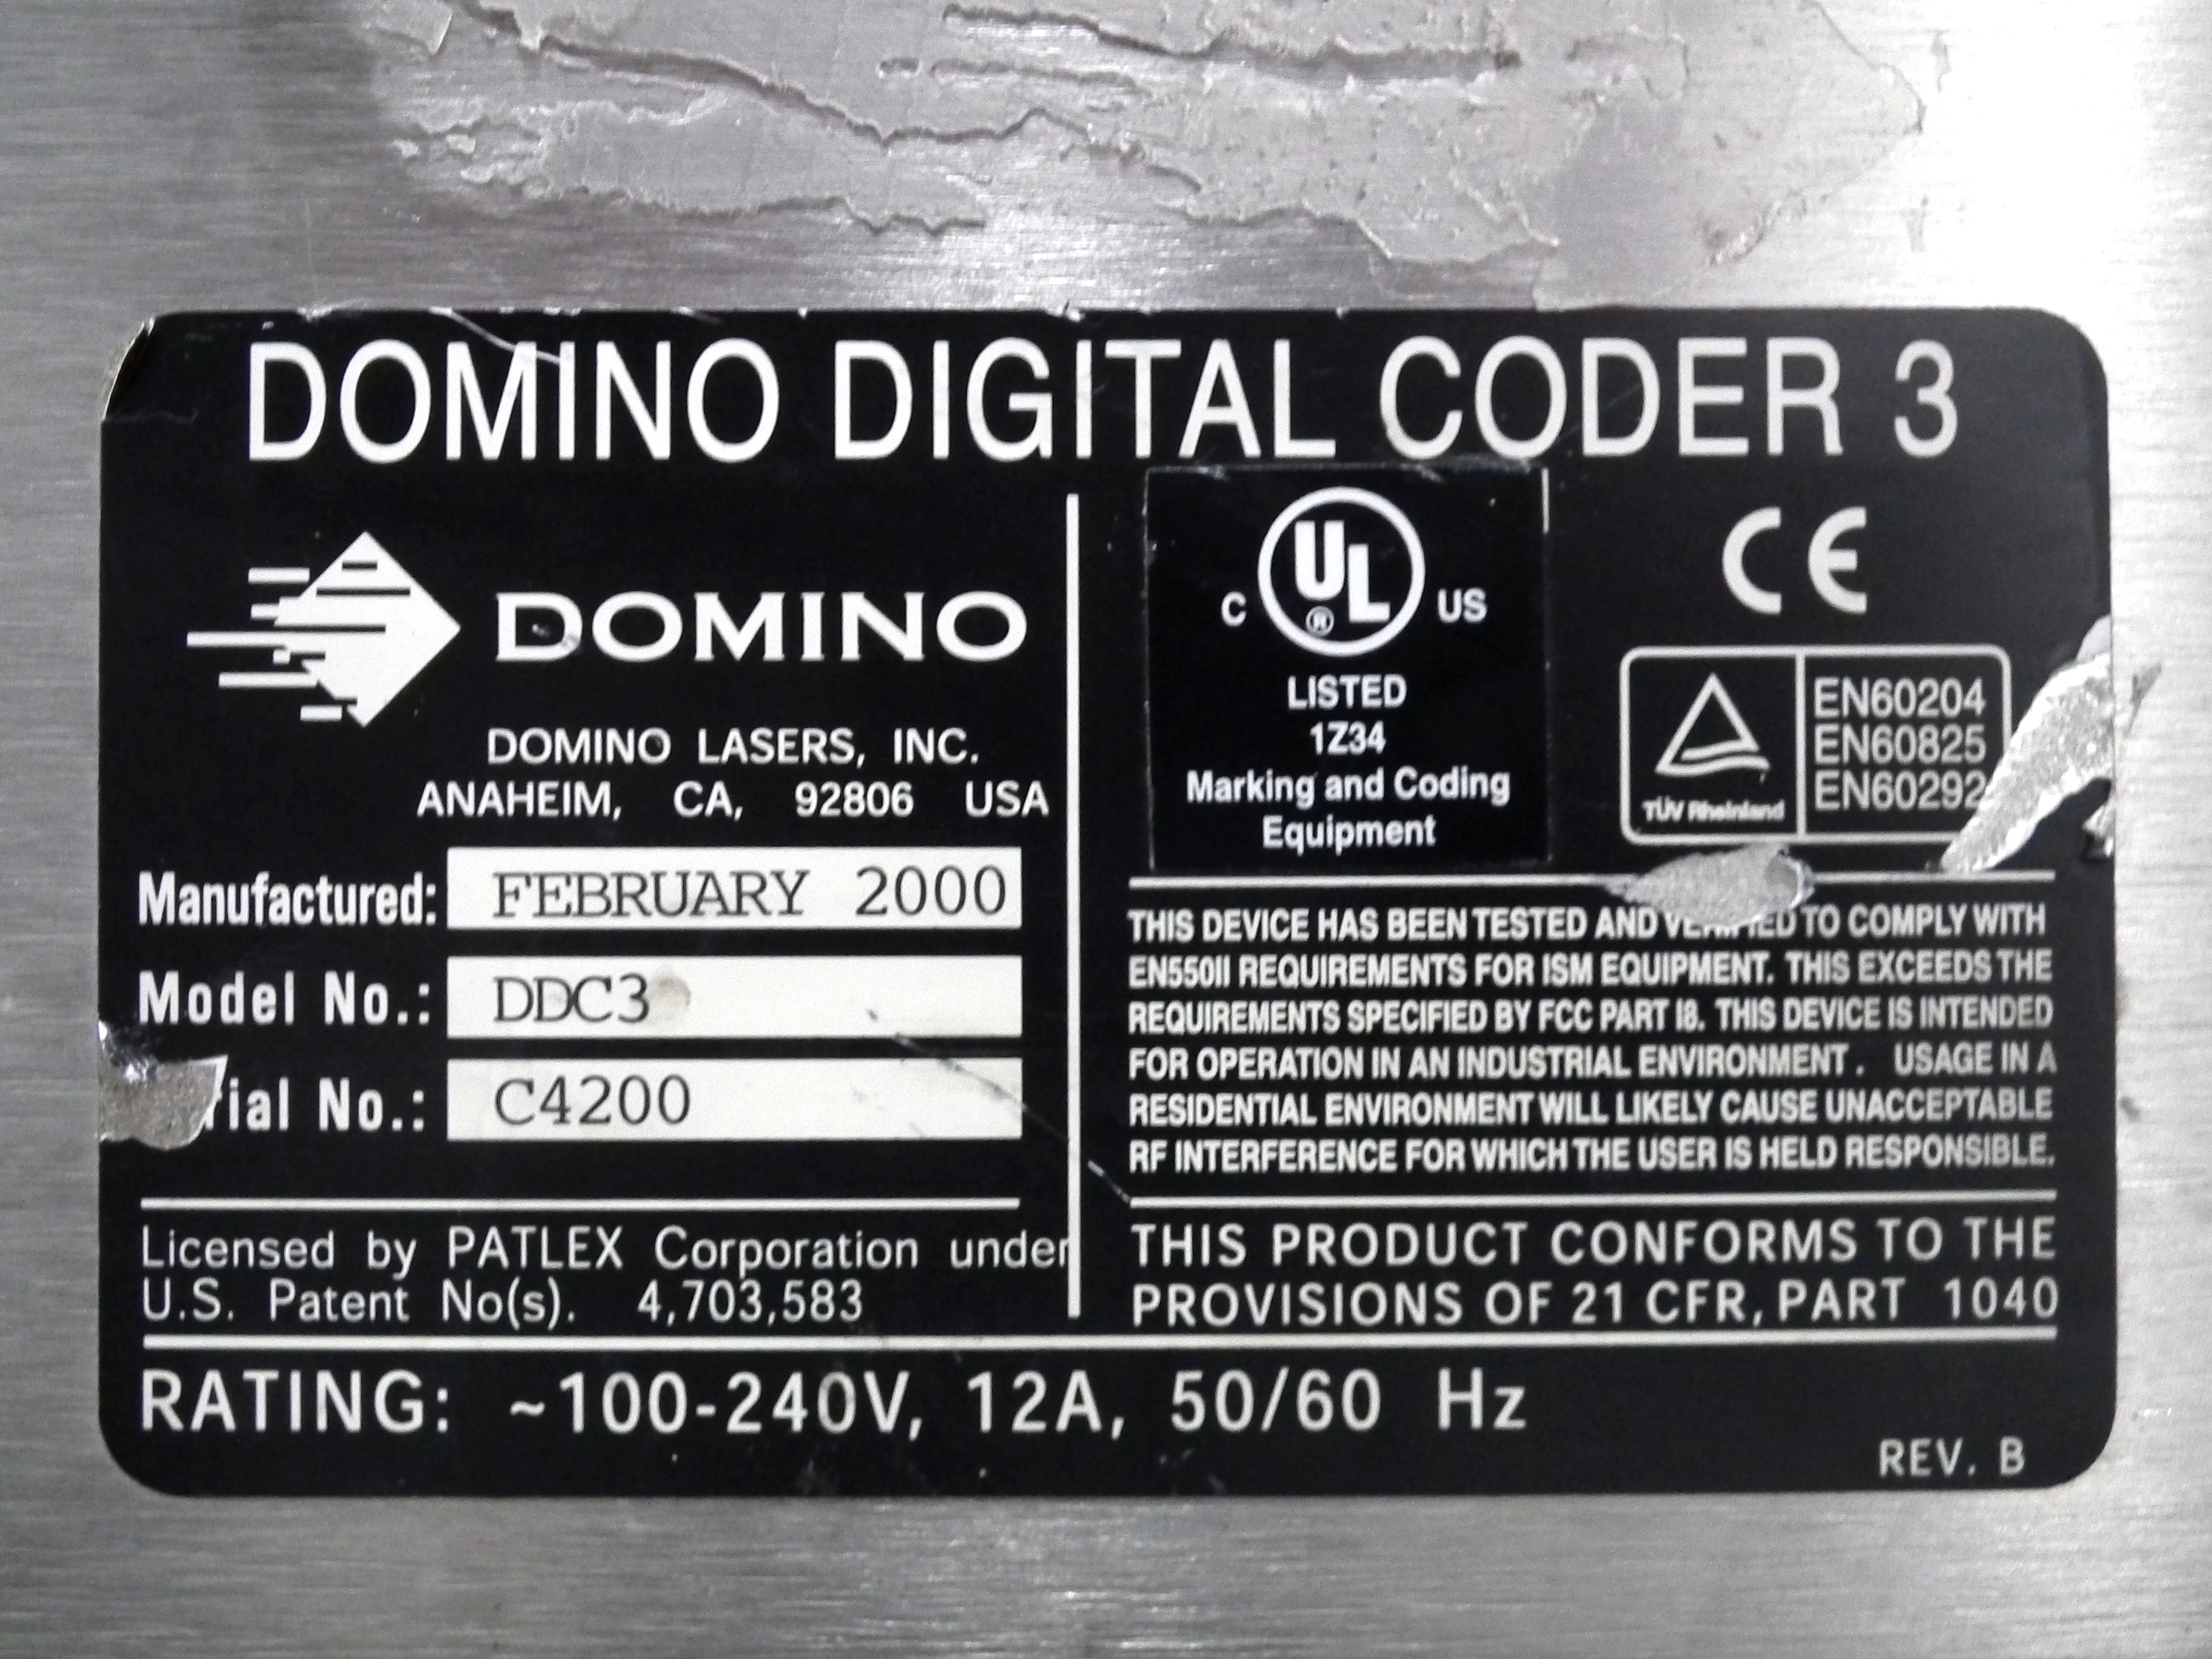 Domino DDC3 Laser Code Dater B4639 - Image 10 of 10